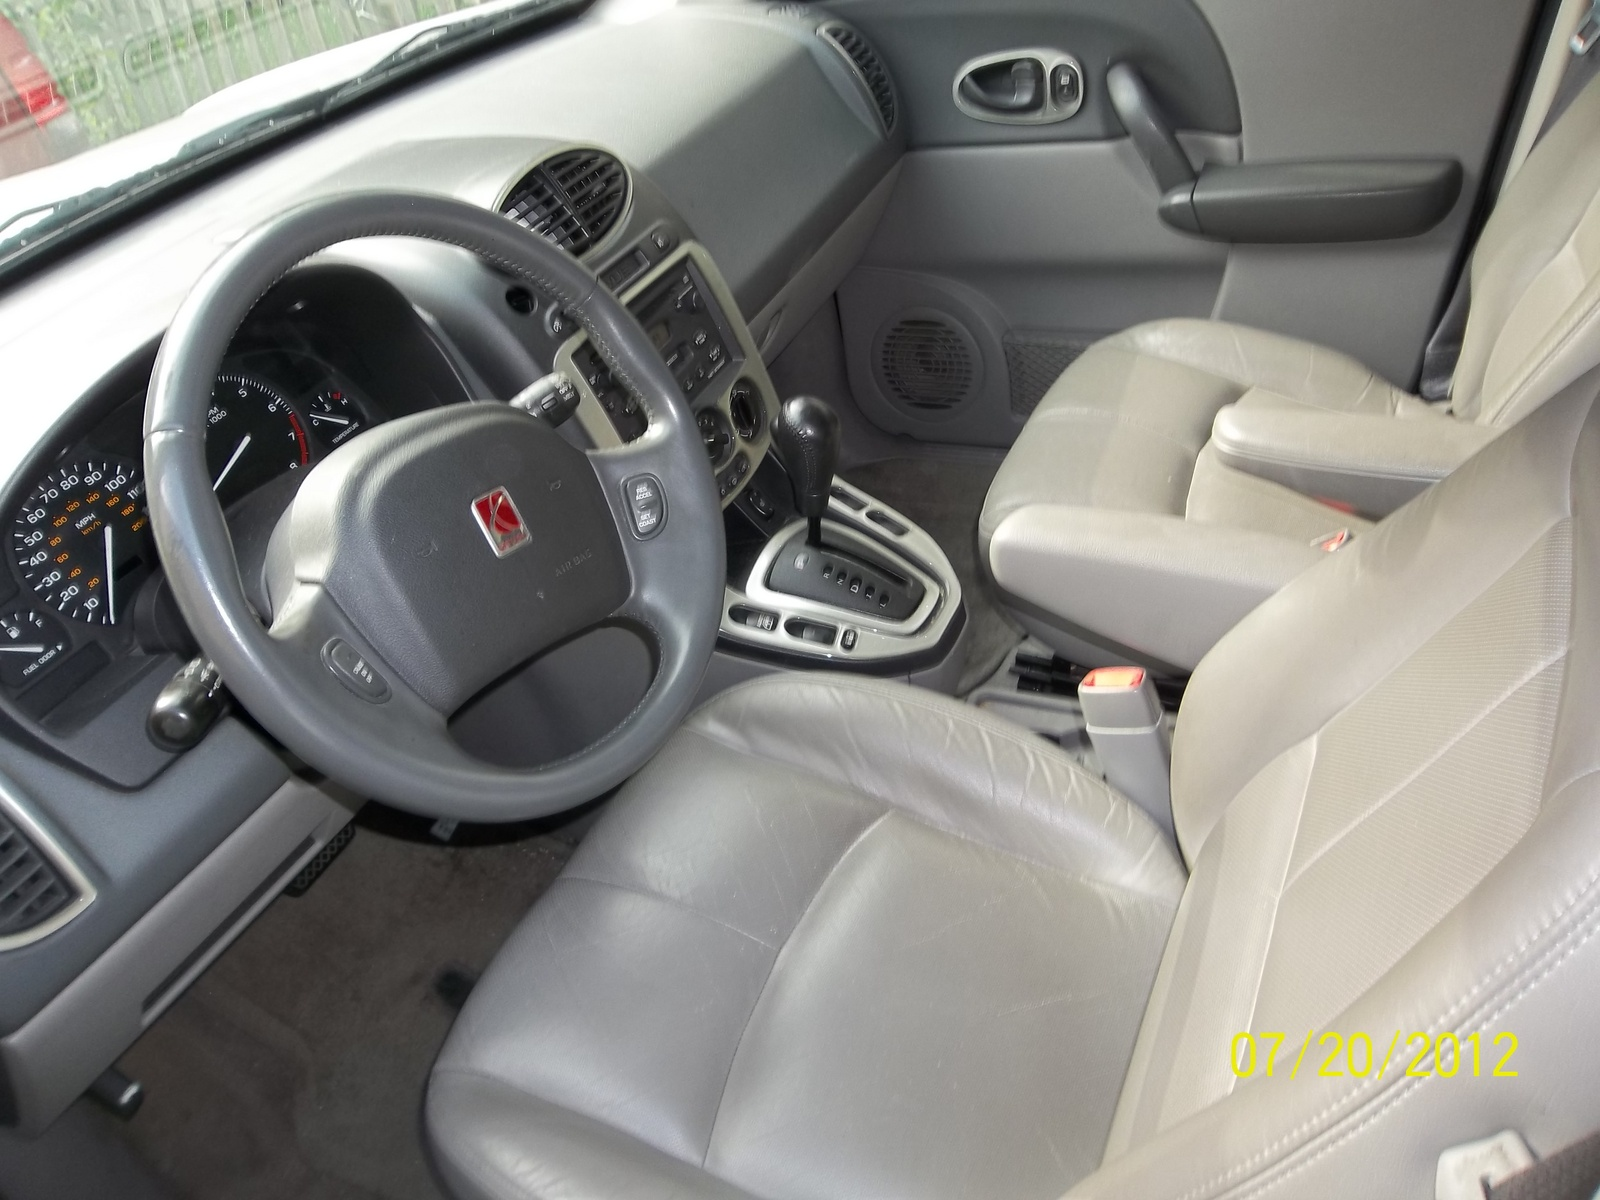 2003 saturn vue interior pictures cargurus. Black Bedroom Furniture Sets. Home Design Ideas